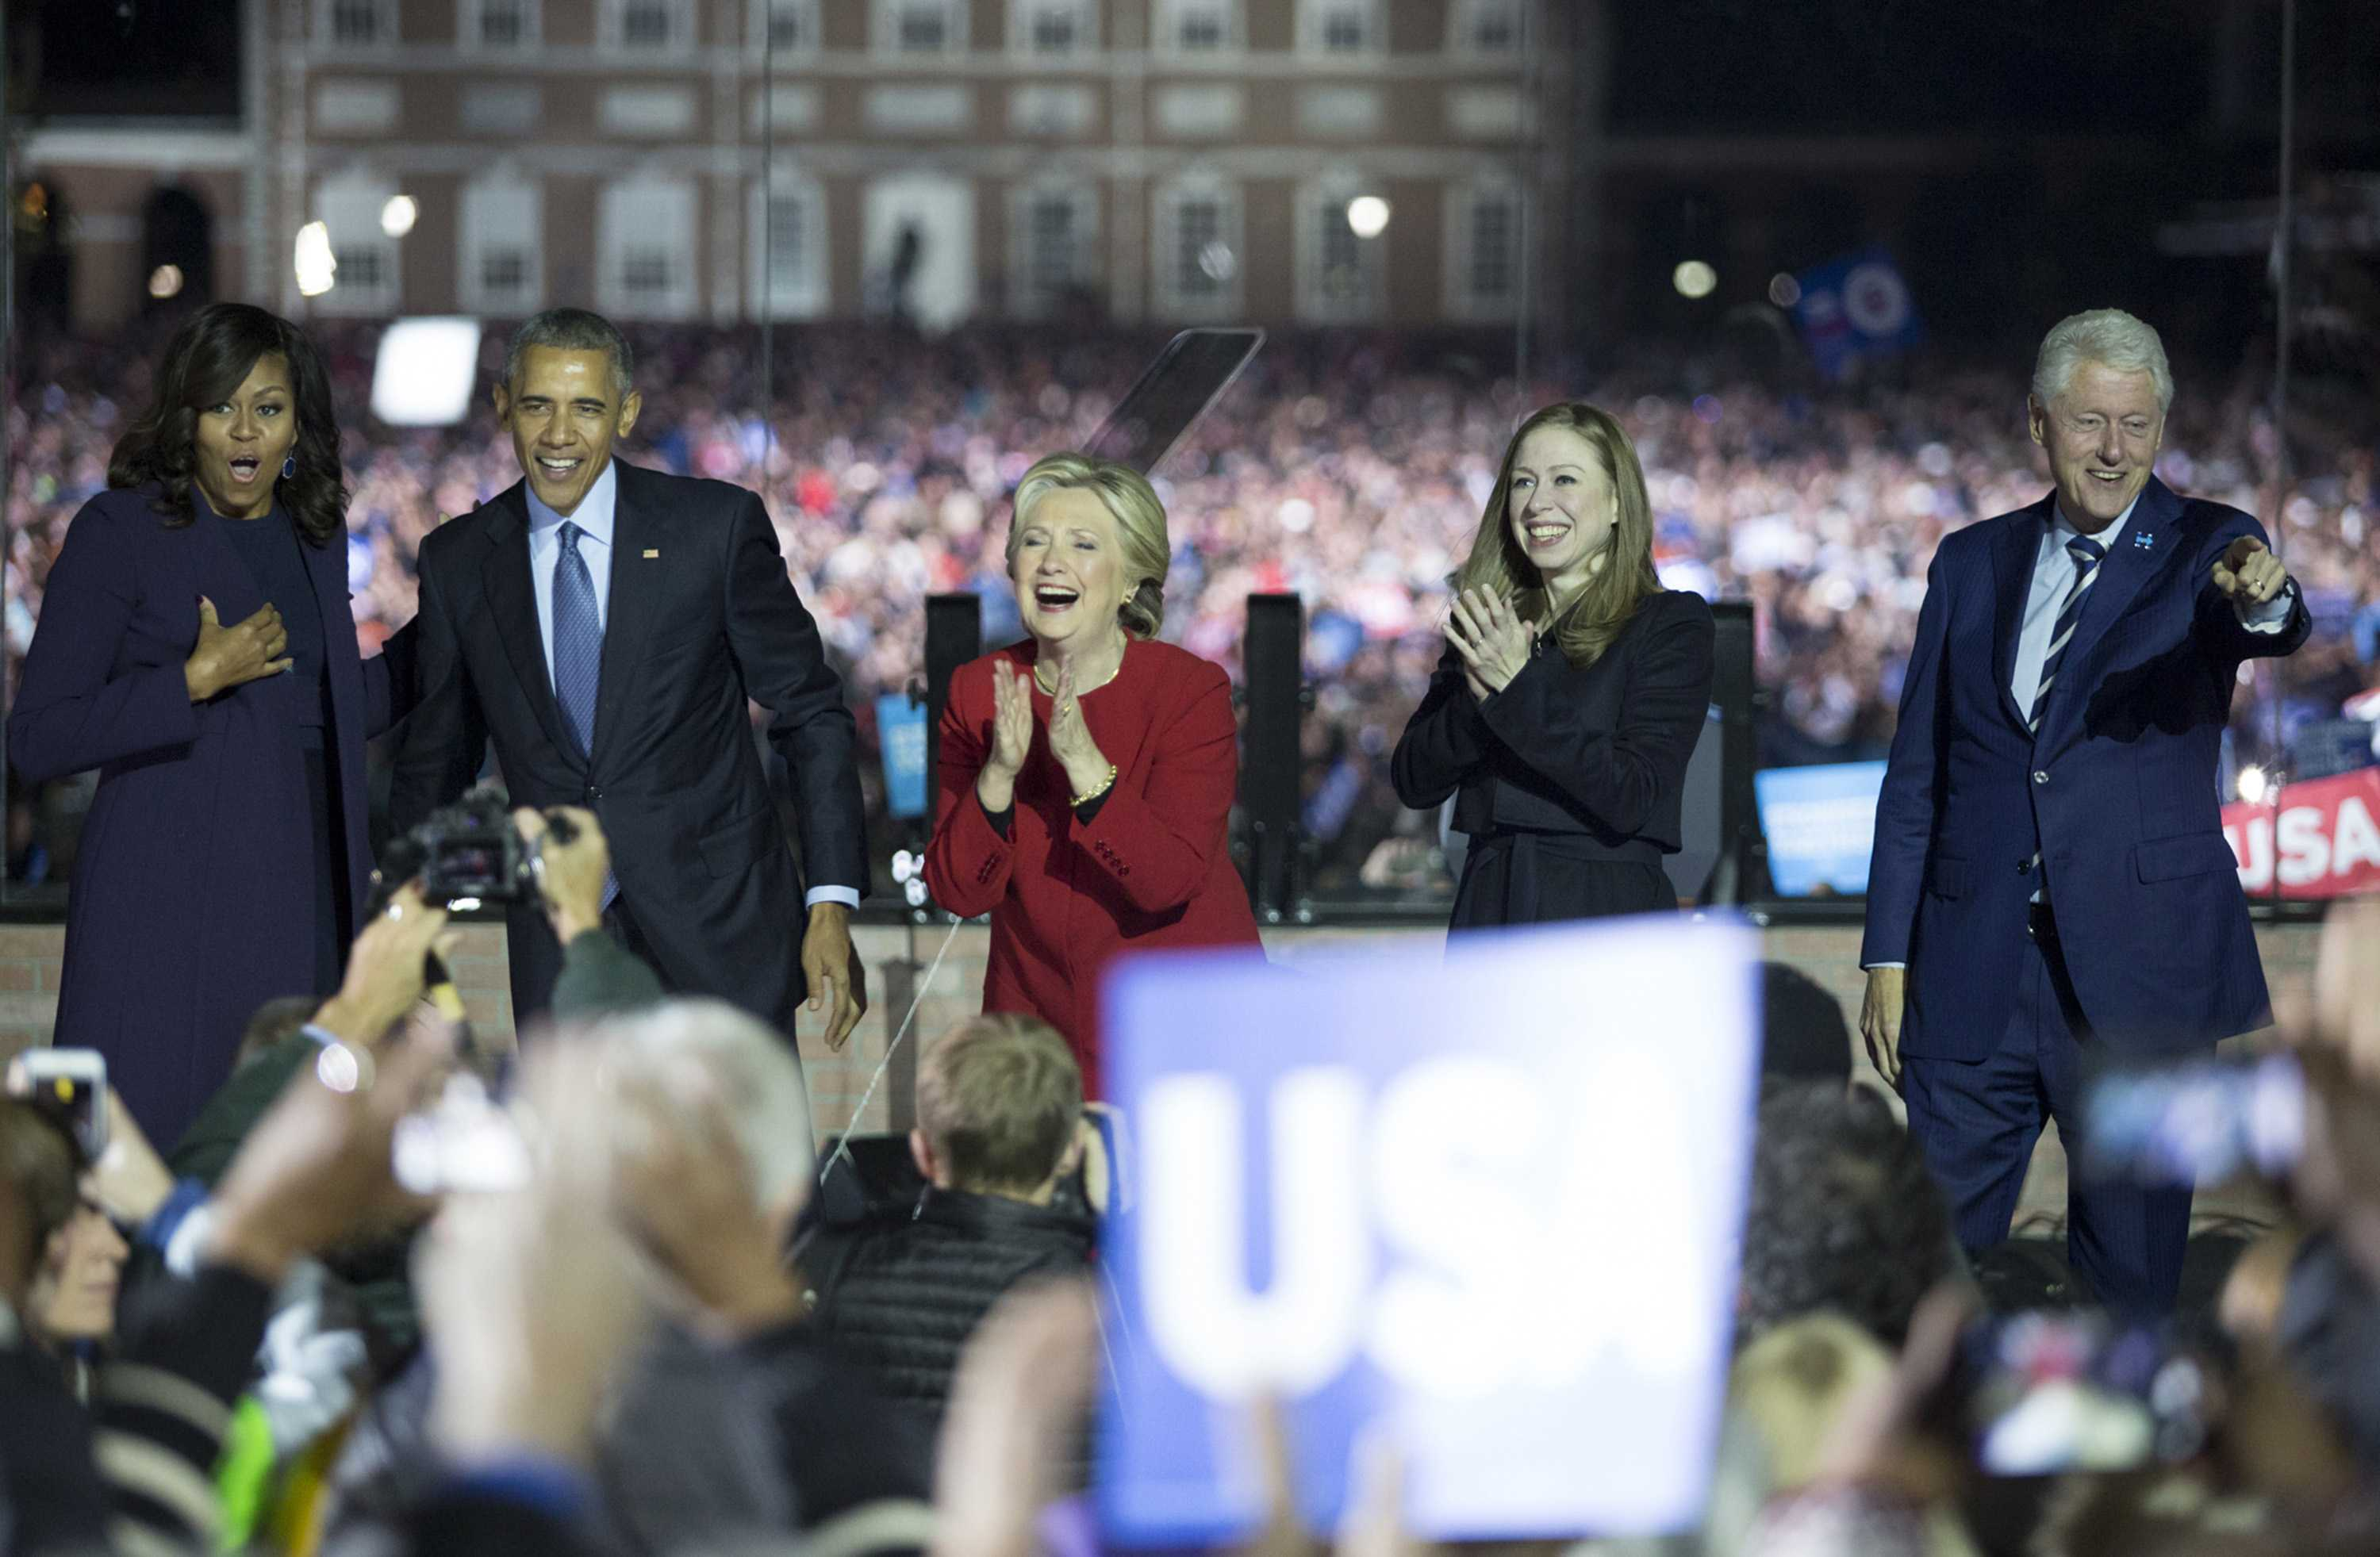 Barack and Michelle Obama along with Hillary, Bill and Chelsea Clinton look out over a crowd in Philadelphia during a rally for Hillary Clinton's presidency on the evening before the election on Monday, Nov. 7, 2016 in Philadelphia, Pa. (Margo Reed/Philadelphia Inquirer/TNS)